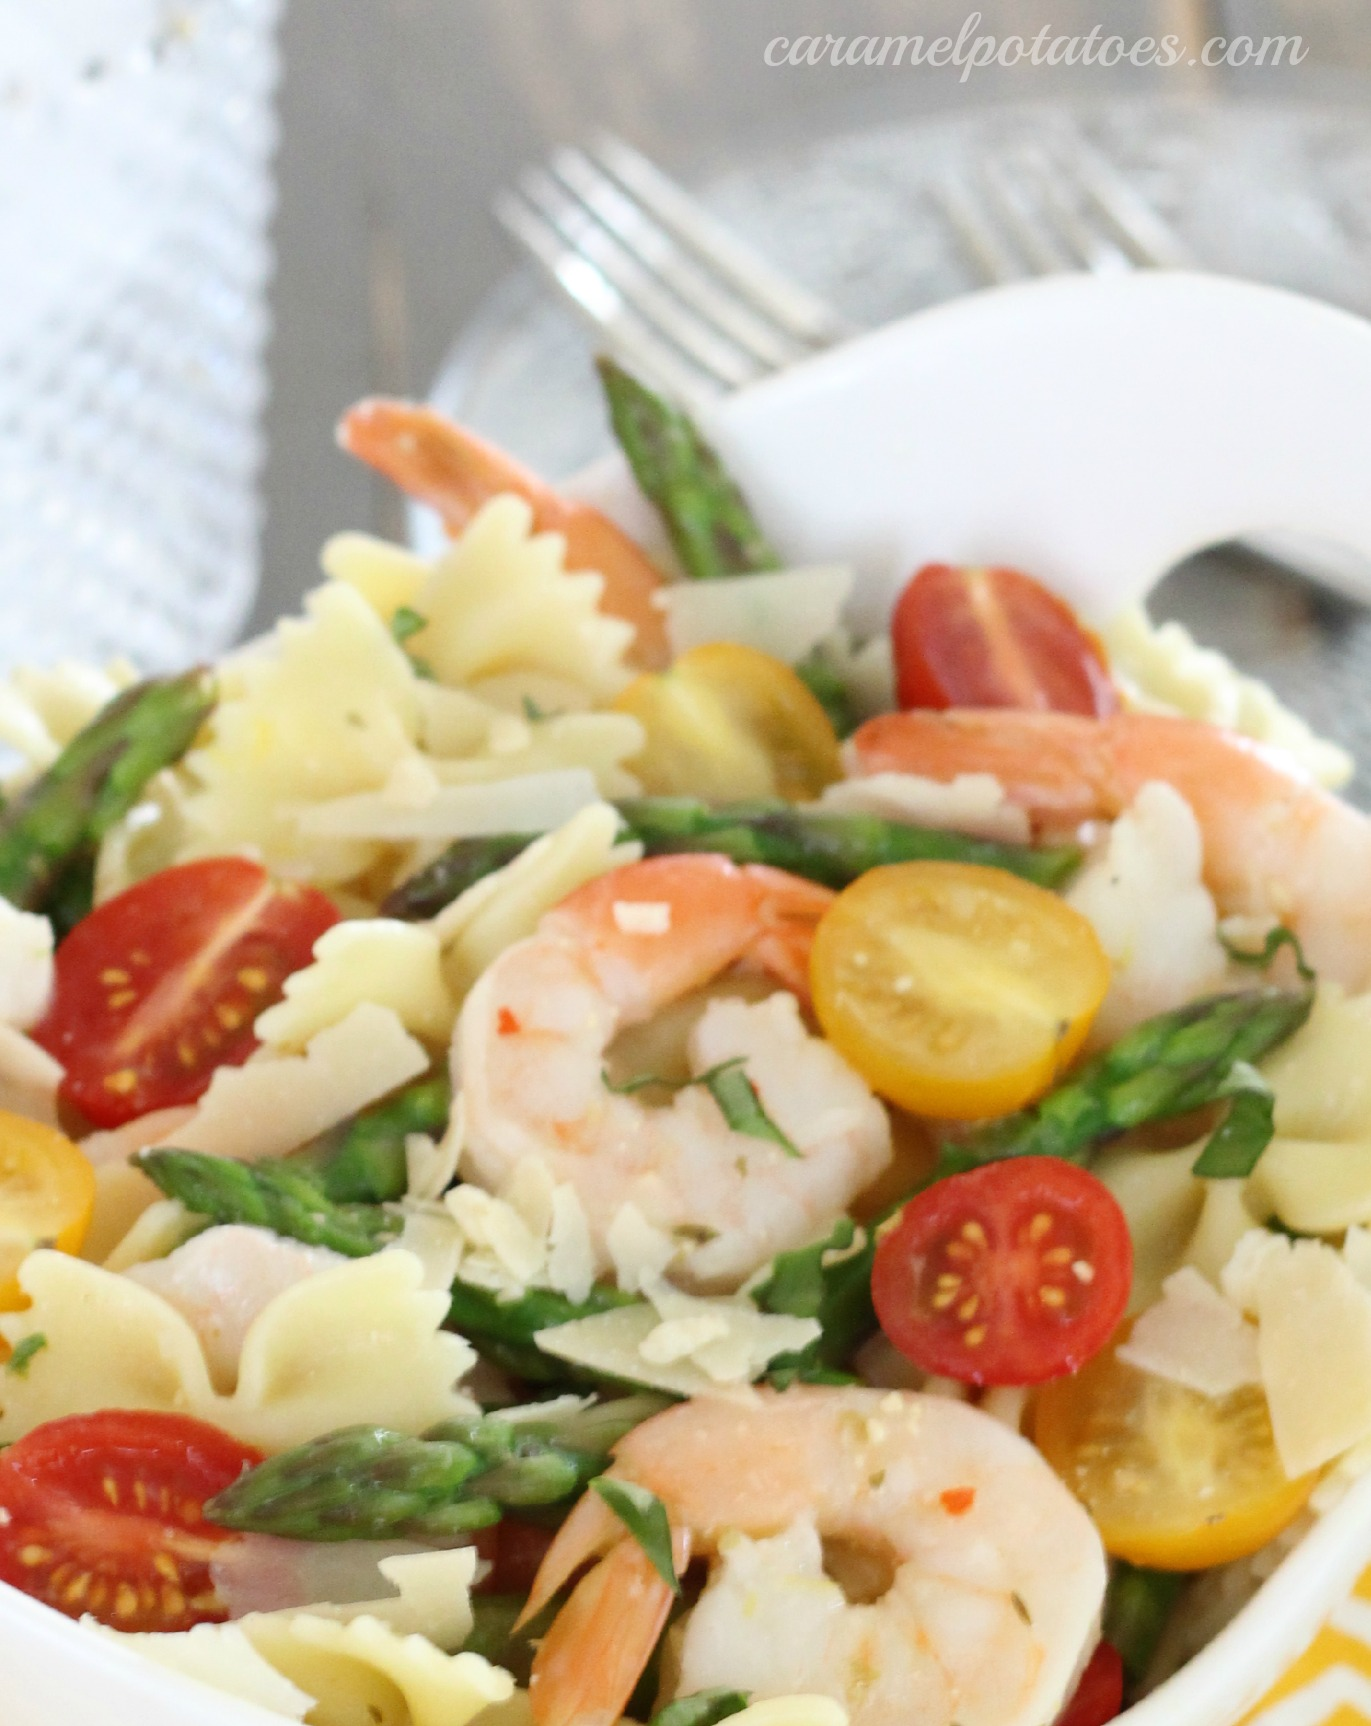 ... summer veggies with pasta and shrimp recipes dishmaps shrimp pasta